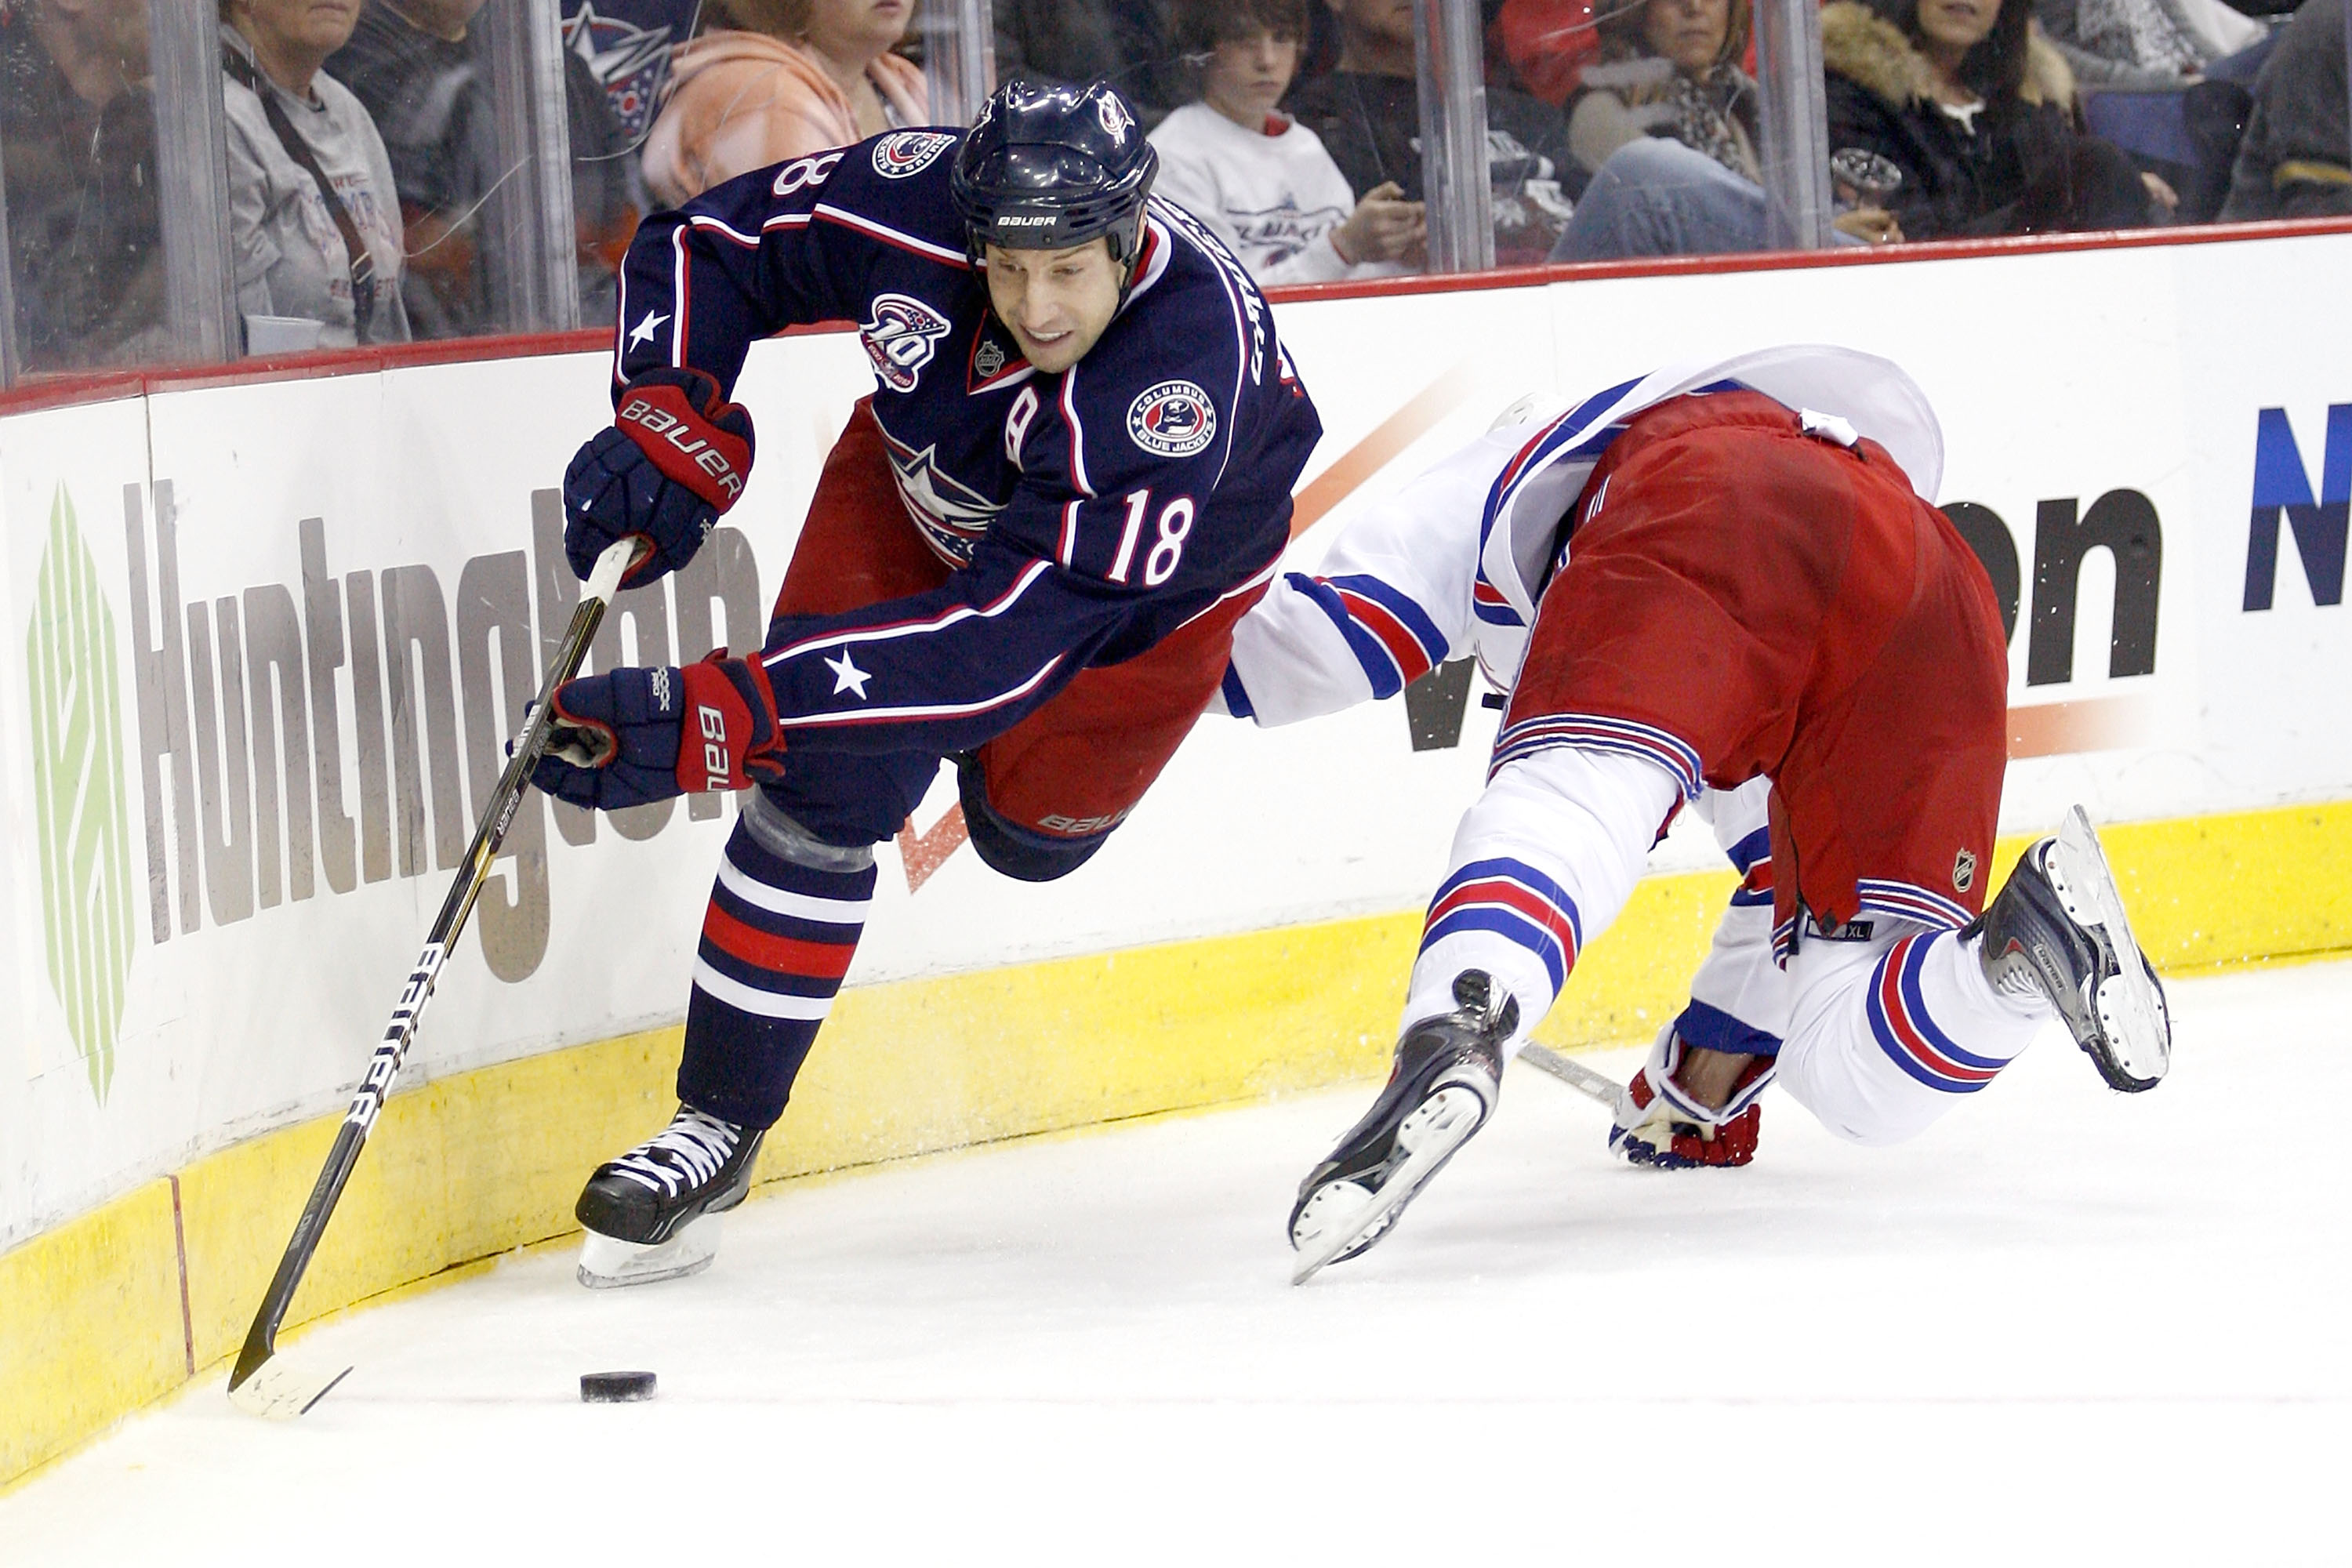 COLUMBUS,OH - DECEMBER 11:  R.J. Umberger #18 of the Columbus Blue Jackets slips past Marc Staal #18 of the New York Rangers to get to a loose puck during the second period on December 11, 2010 at Nationwide Arena in Columbus, Ohio.  (Photo by John Griesh